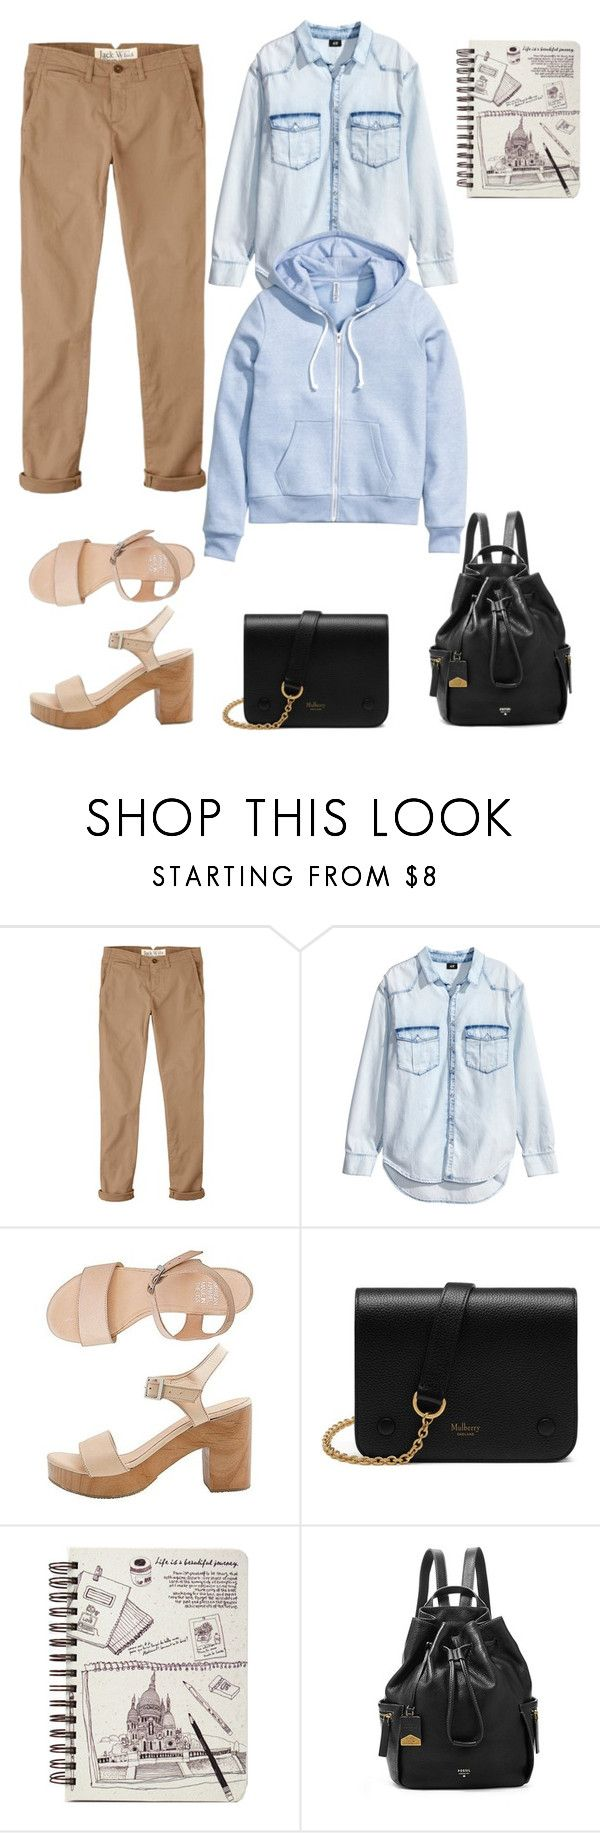 """""""бежевые джинсы"""" by anjasha ❤ liked on Polyvore featuring Jack Wills, H&M, American Apparel, Mulberry and FOSSIL"""